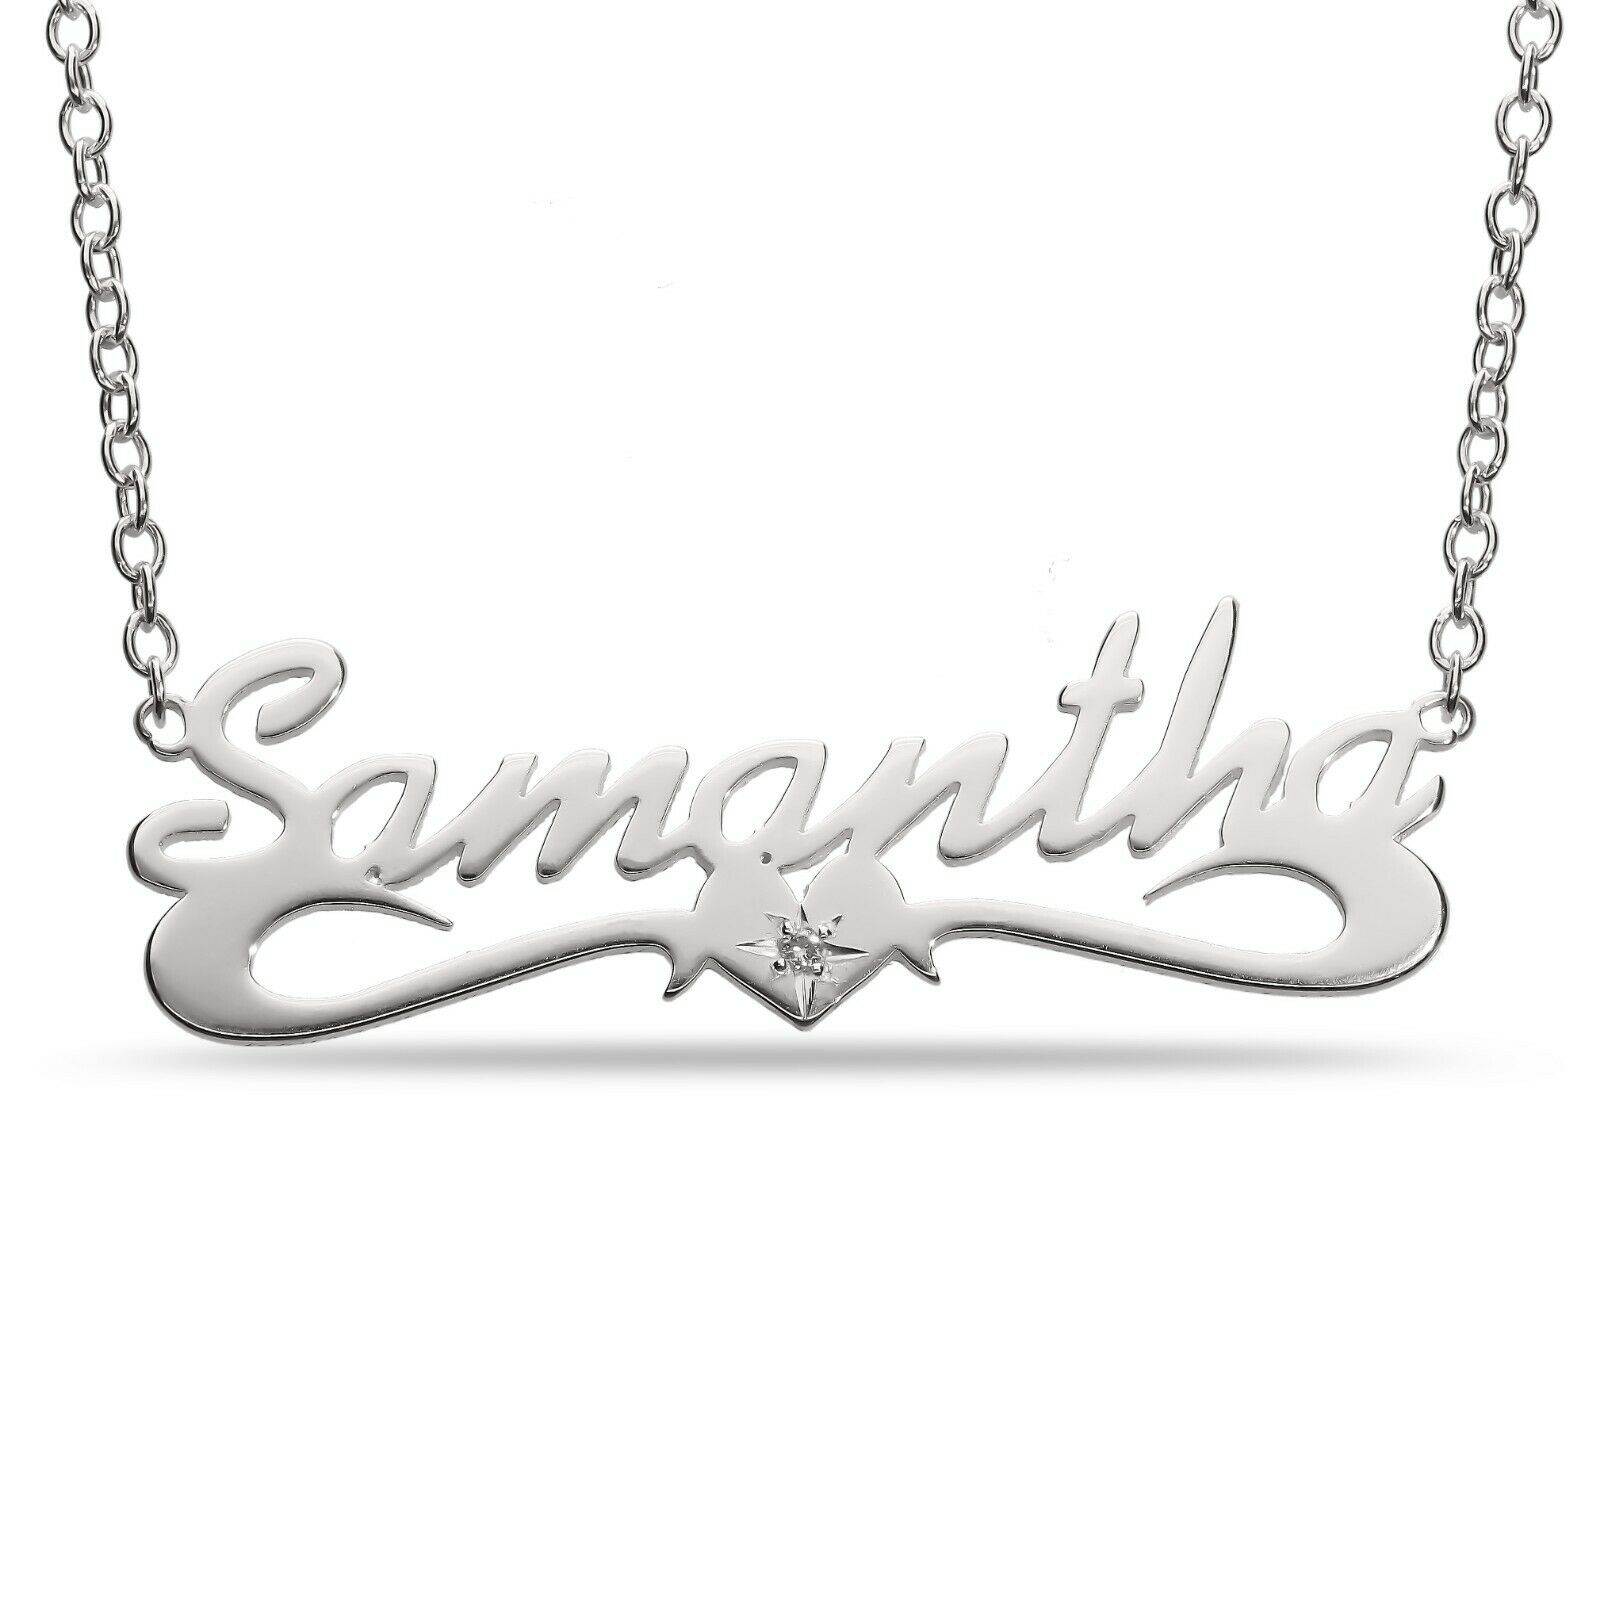 Diamond Stone Necklace customize ANY NAME Sterling Silver Pendant Chain Gift